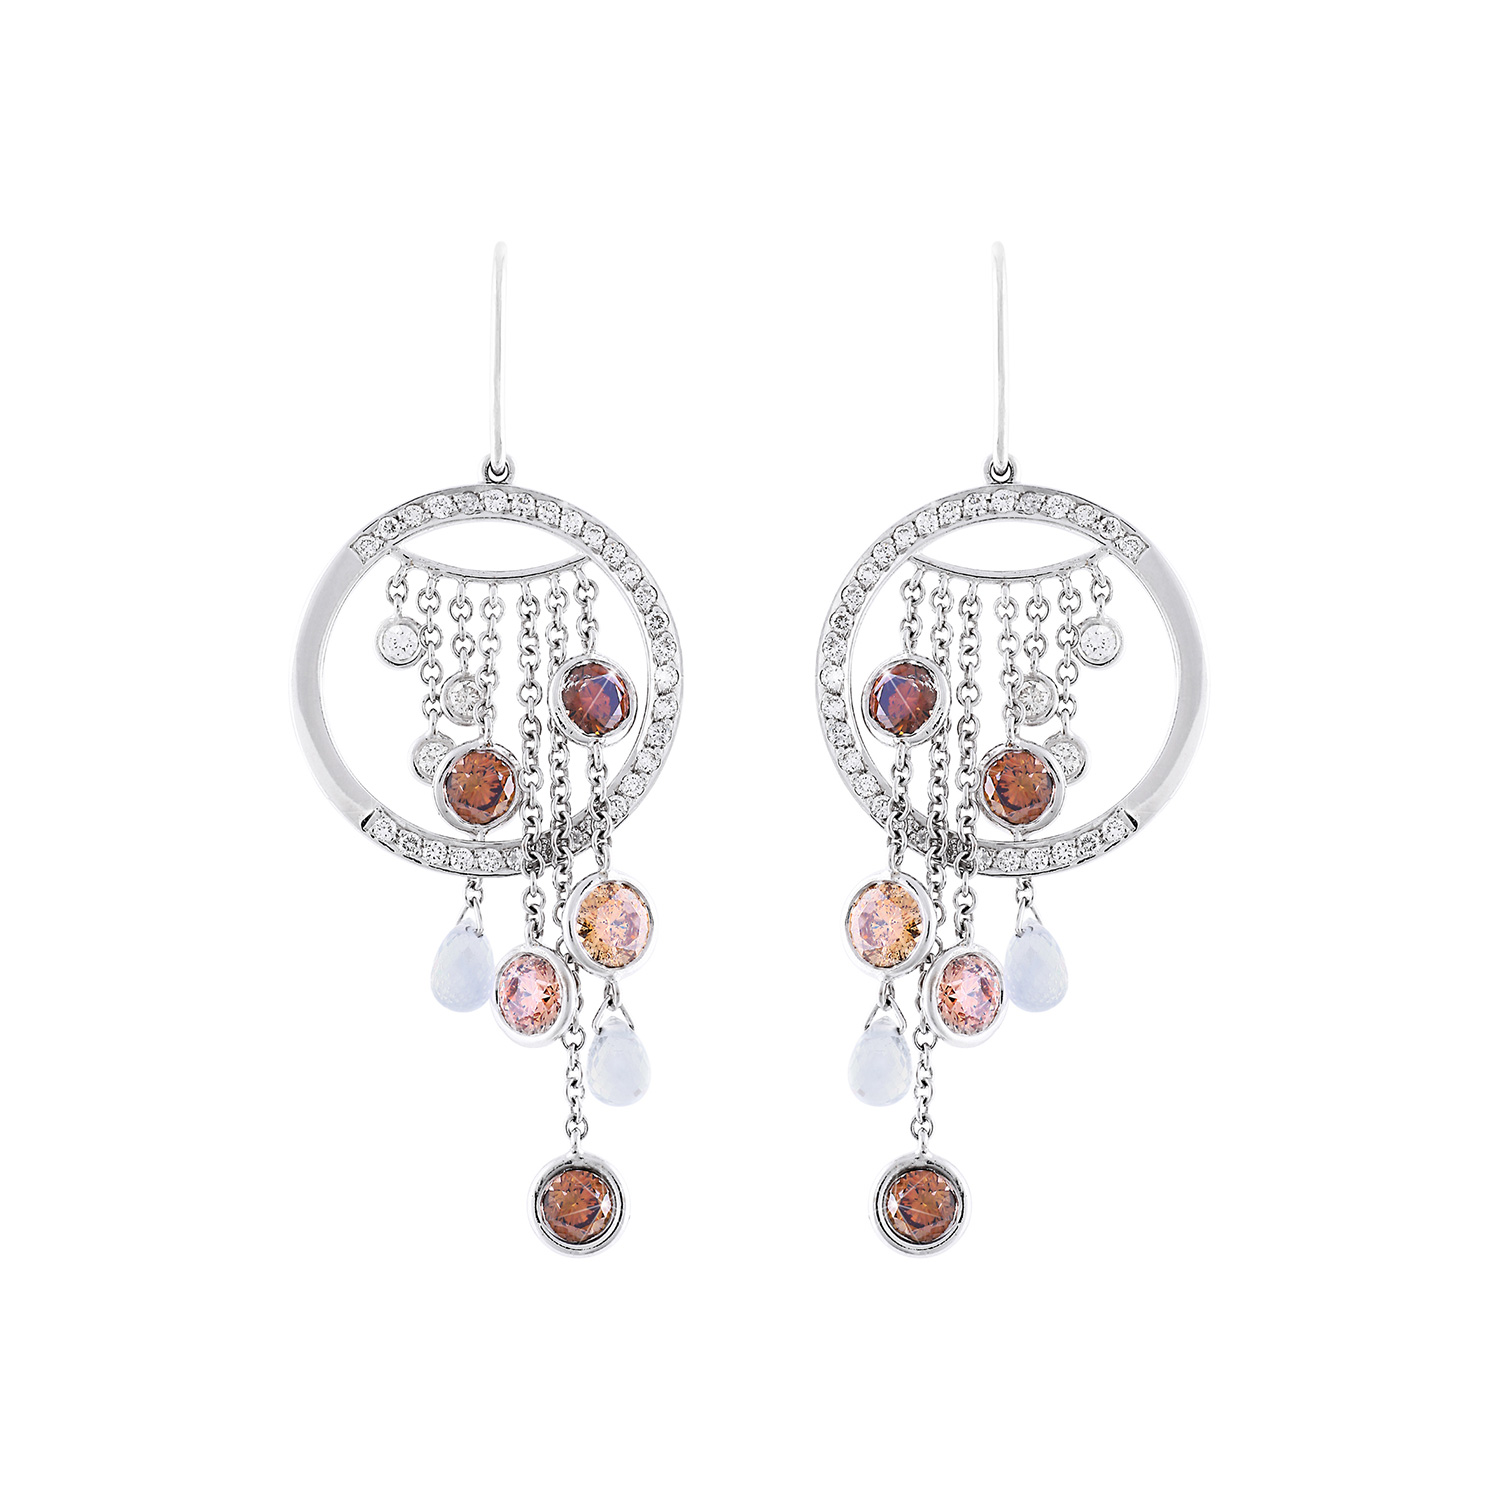 Bespoke Jewellery Exotic Gems & Jewellery Pte Ltd Earrings White Gold Brown Diamonds White Diamonds